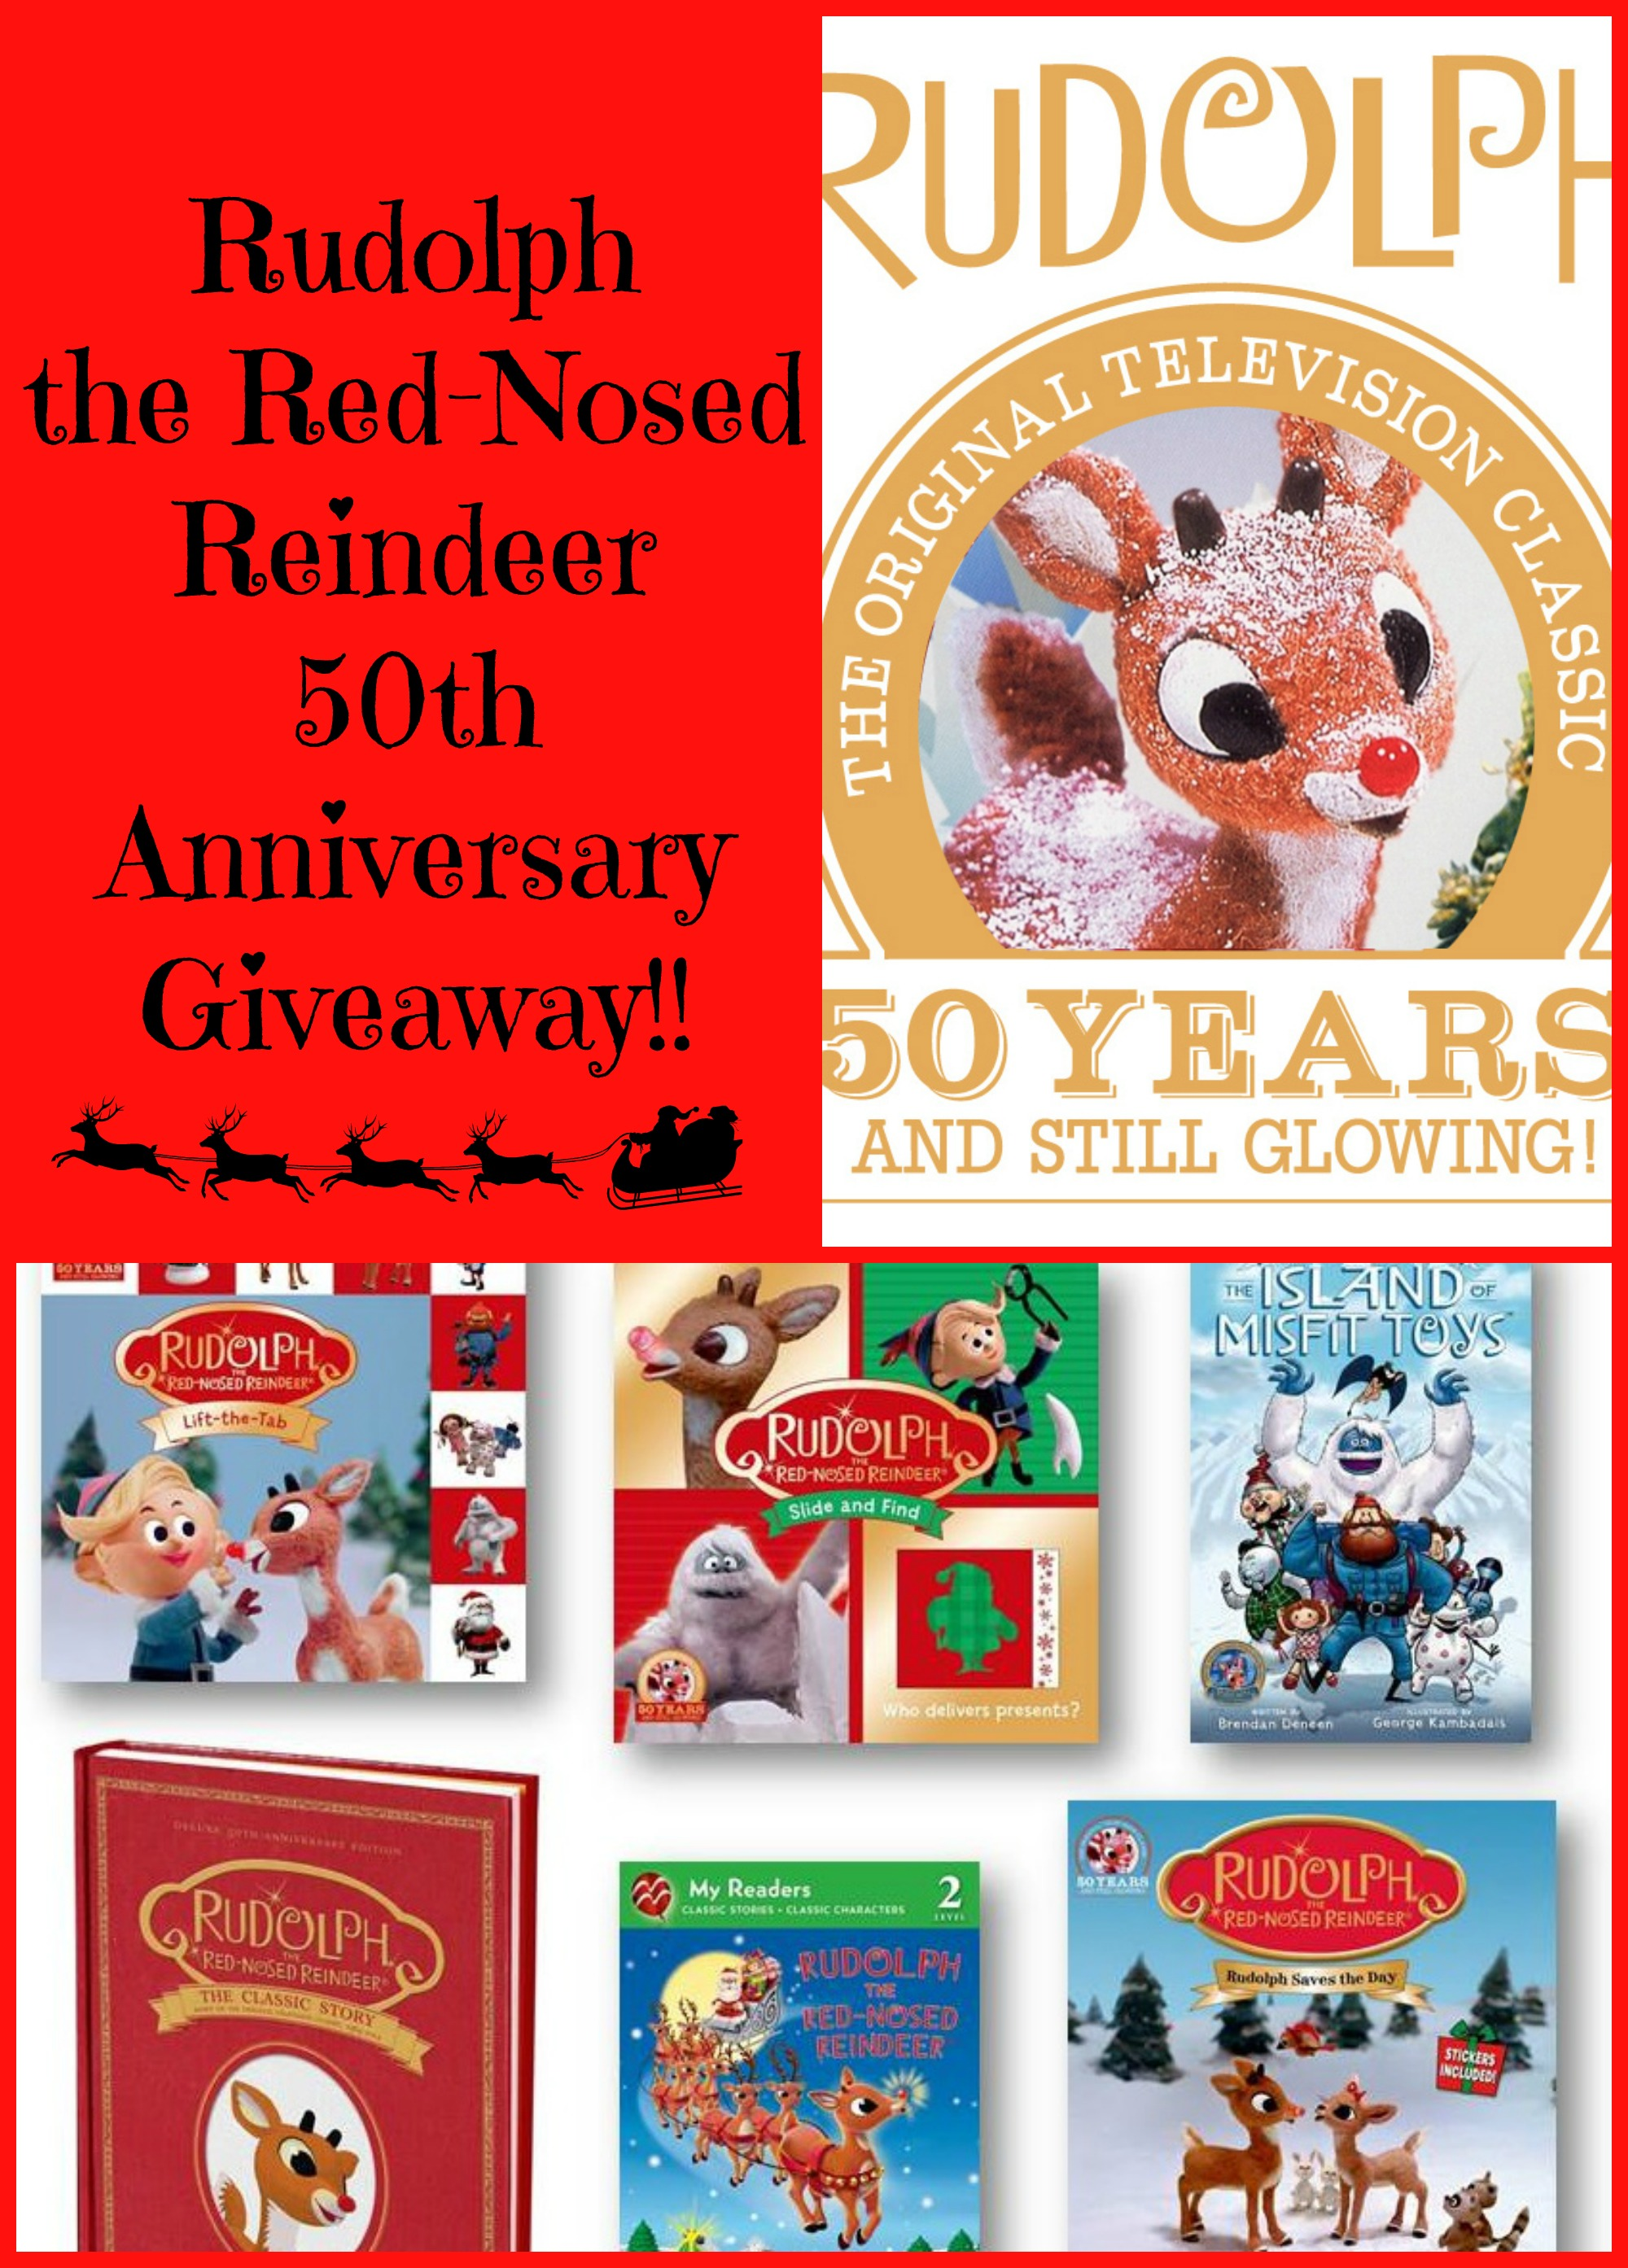 Rudolph The Red-Nosed Reindeer 50th Anniversary – Books, Special, and GIVEAWAY